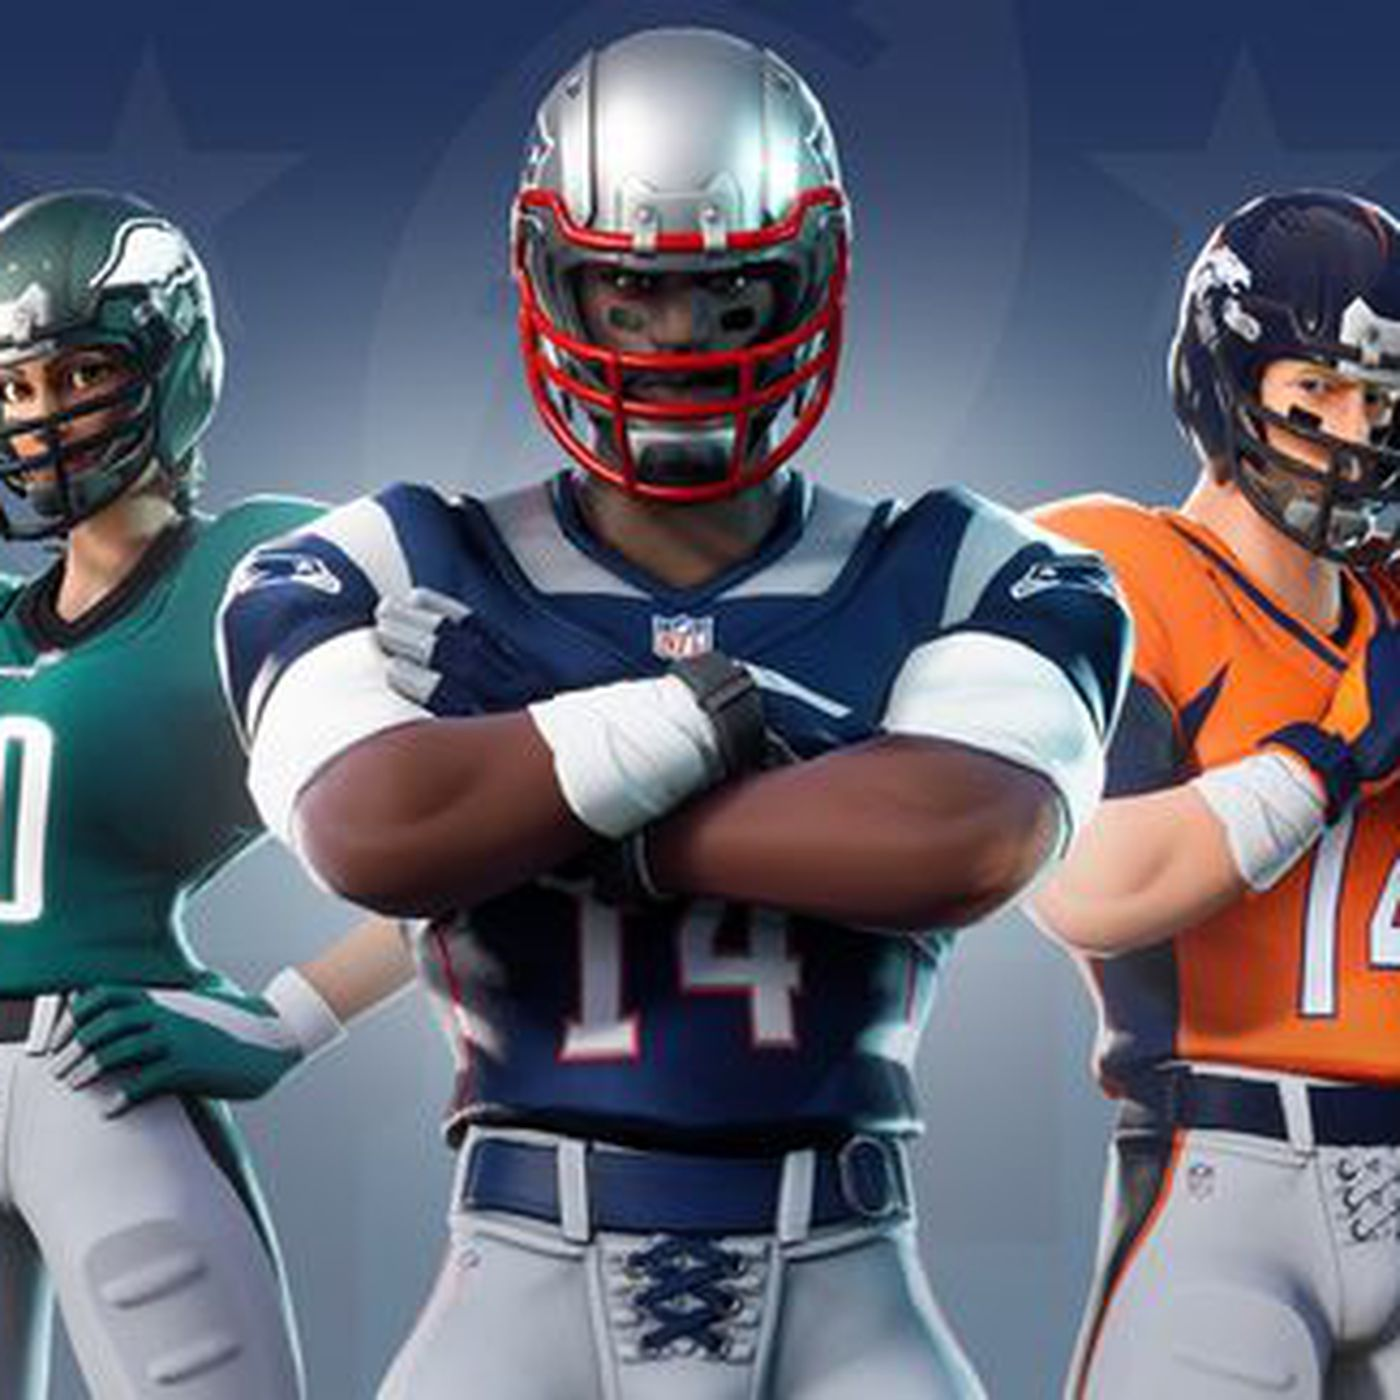 d2819212 NFL items are coming to 'Fortnite,' and they look awesome - SBNation.com